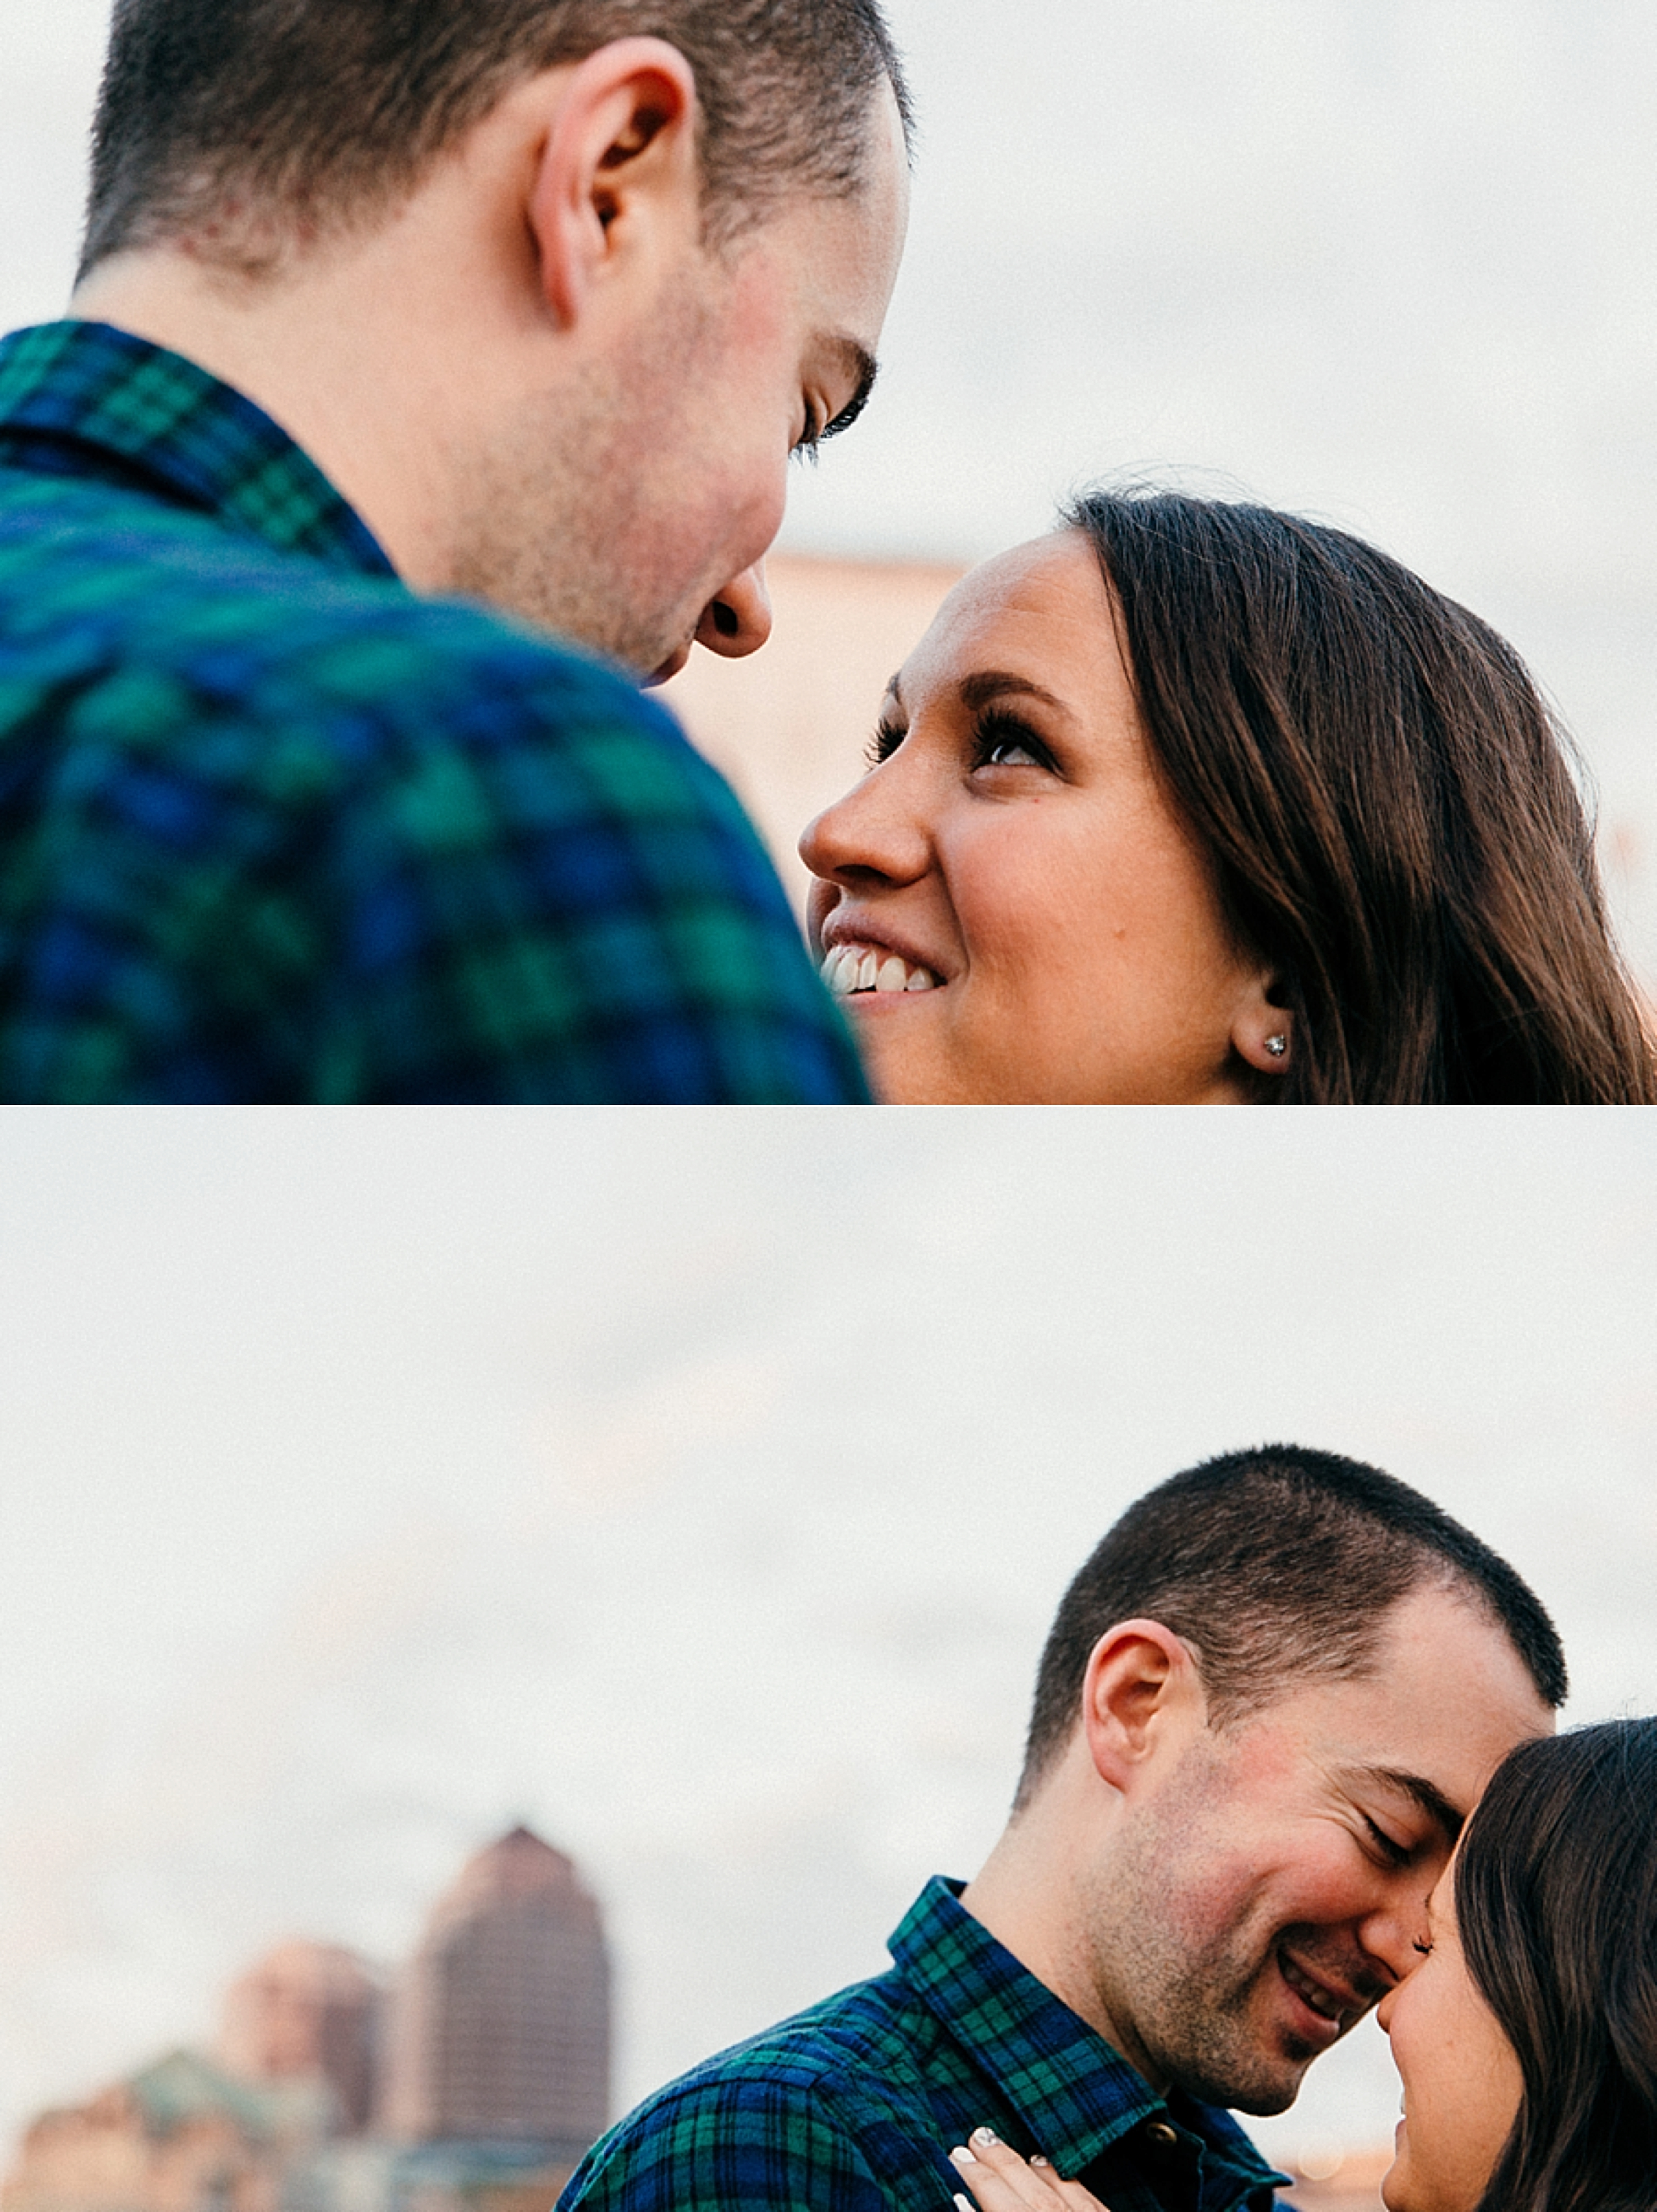 midwest-michigan-indiana-engagement-and-wedding-photographer-session-in-columbus-ohio_0009.jpg